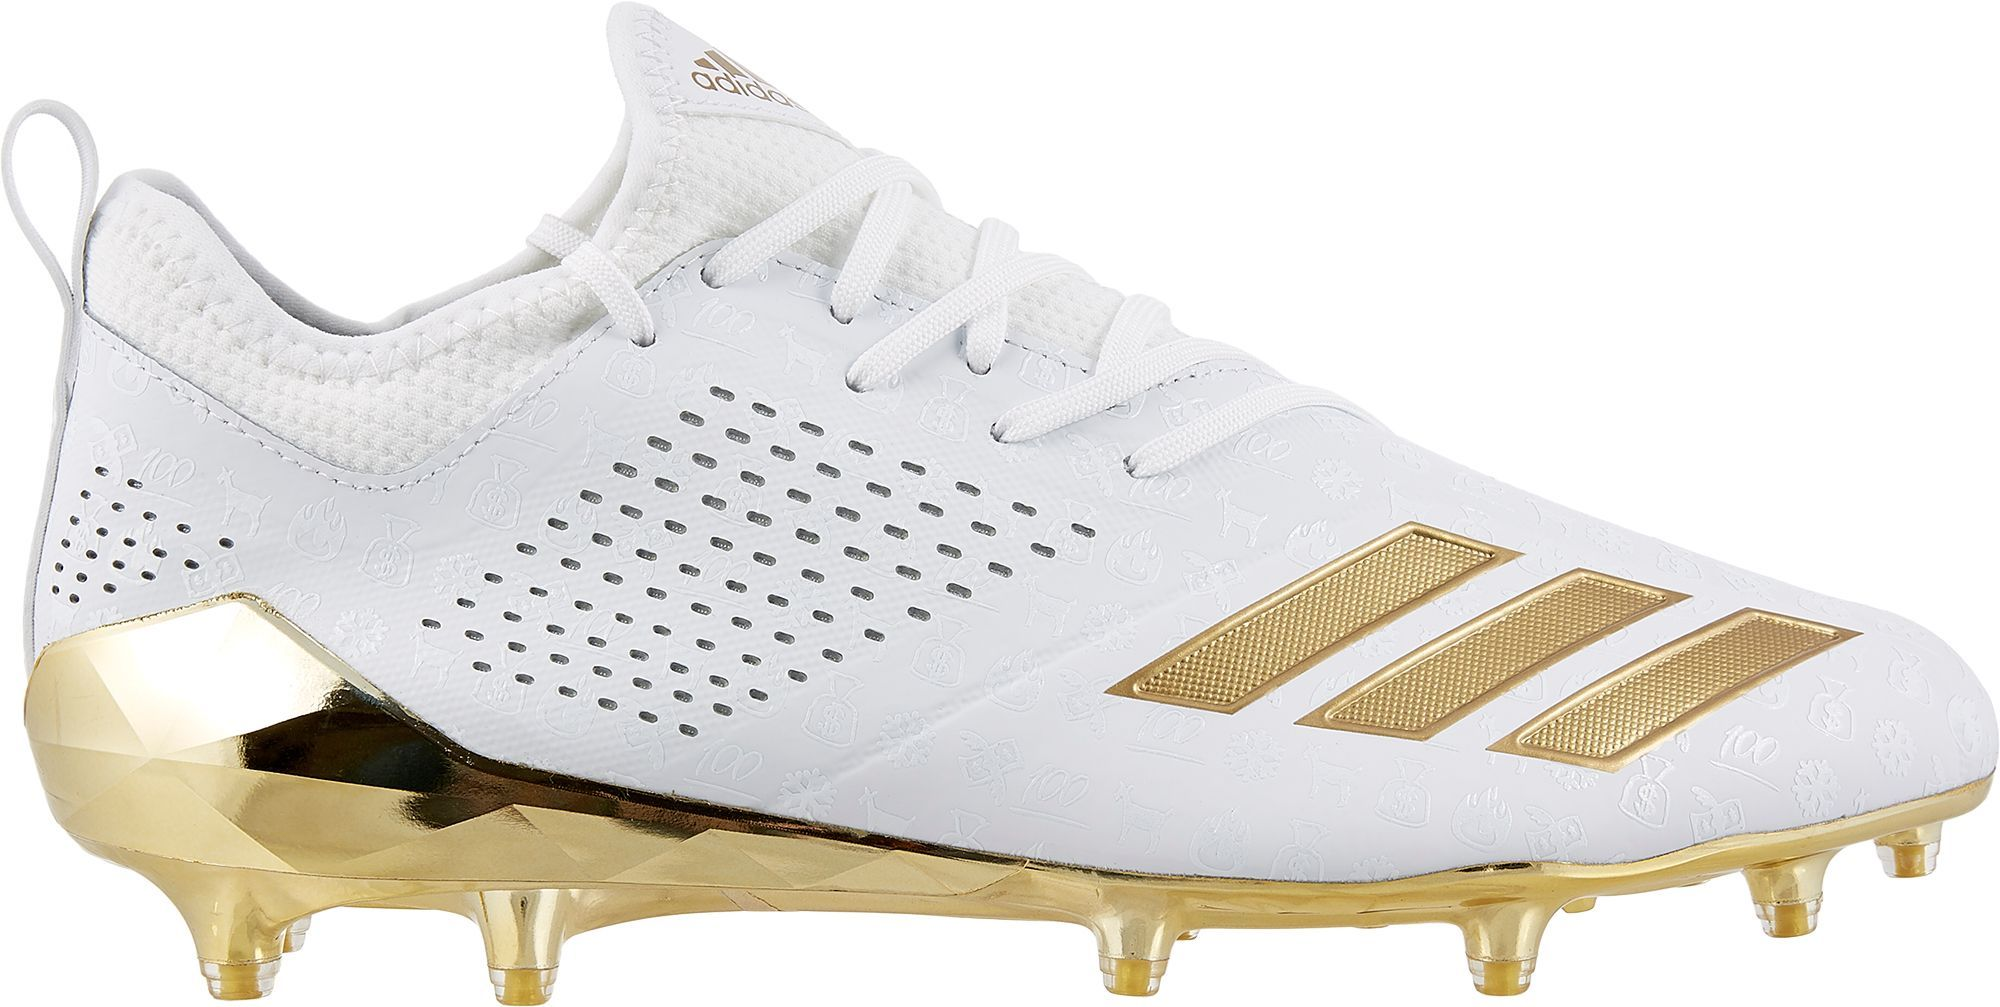 separation shoes 2c3b0 5fae9 adidas Men s adiZERO 5-Star 7.0 adiMoji Pack Football Cleats, Size  12.0,  White